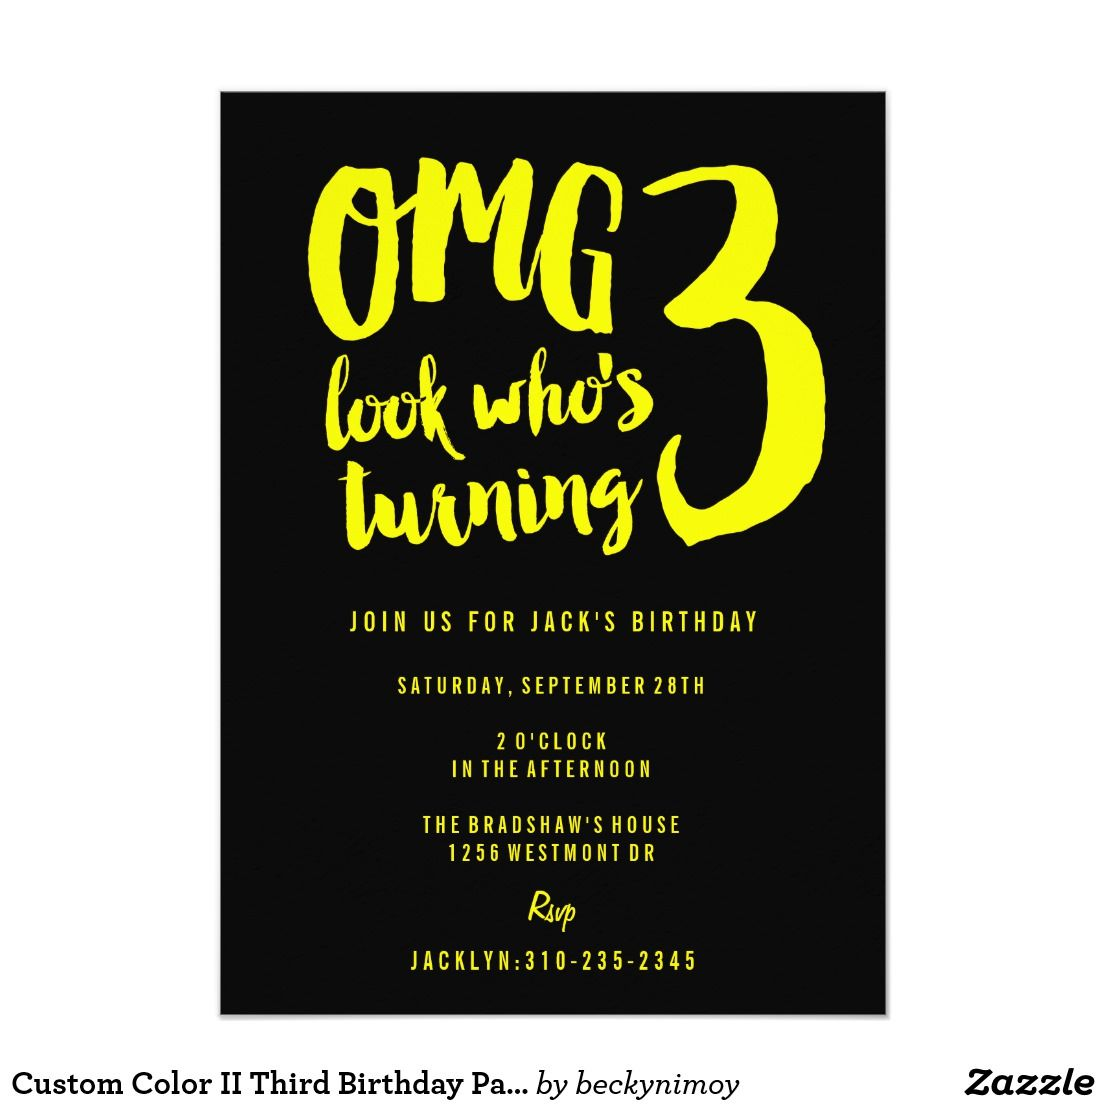 Custom Color II Third Birthday Party Invitation 3 A Cute Yet Sophisticated For Your Year Old Girl Or Boy